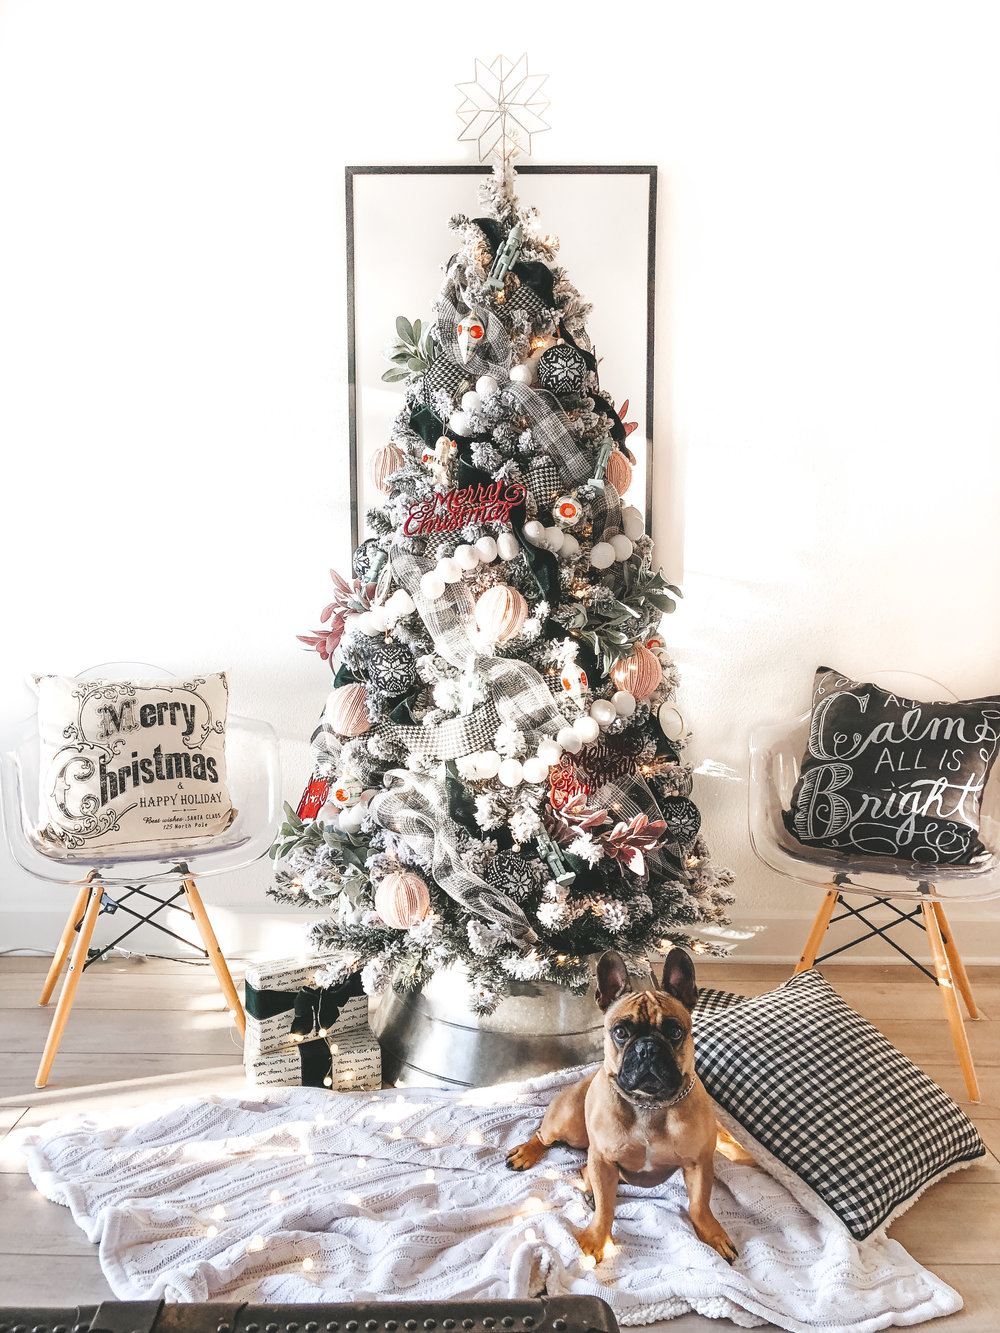 HOW TO MAKE YOUR CHRISTMAS TREE FULL ON A BUDGET — Me and Mr. Jones